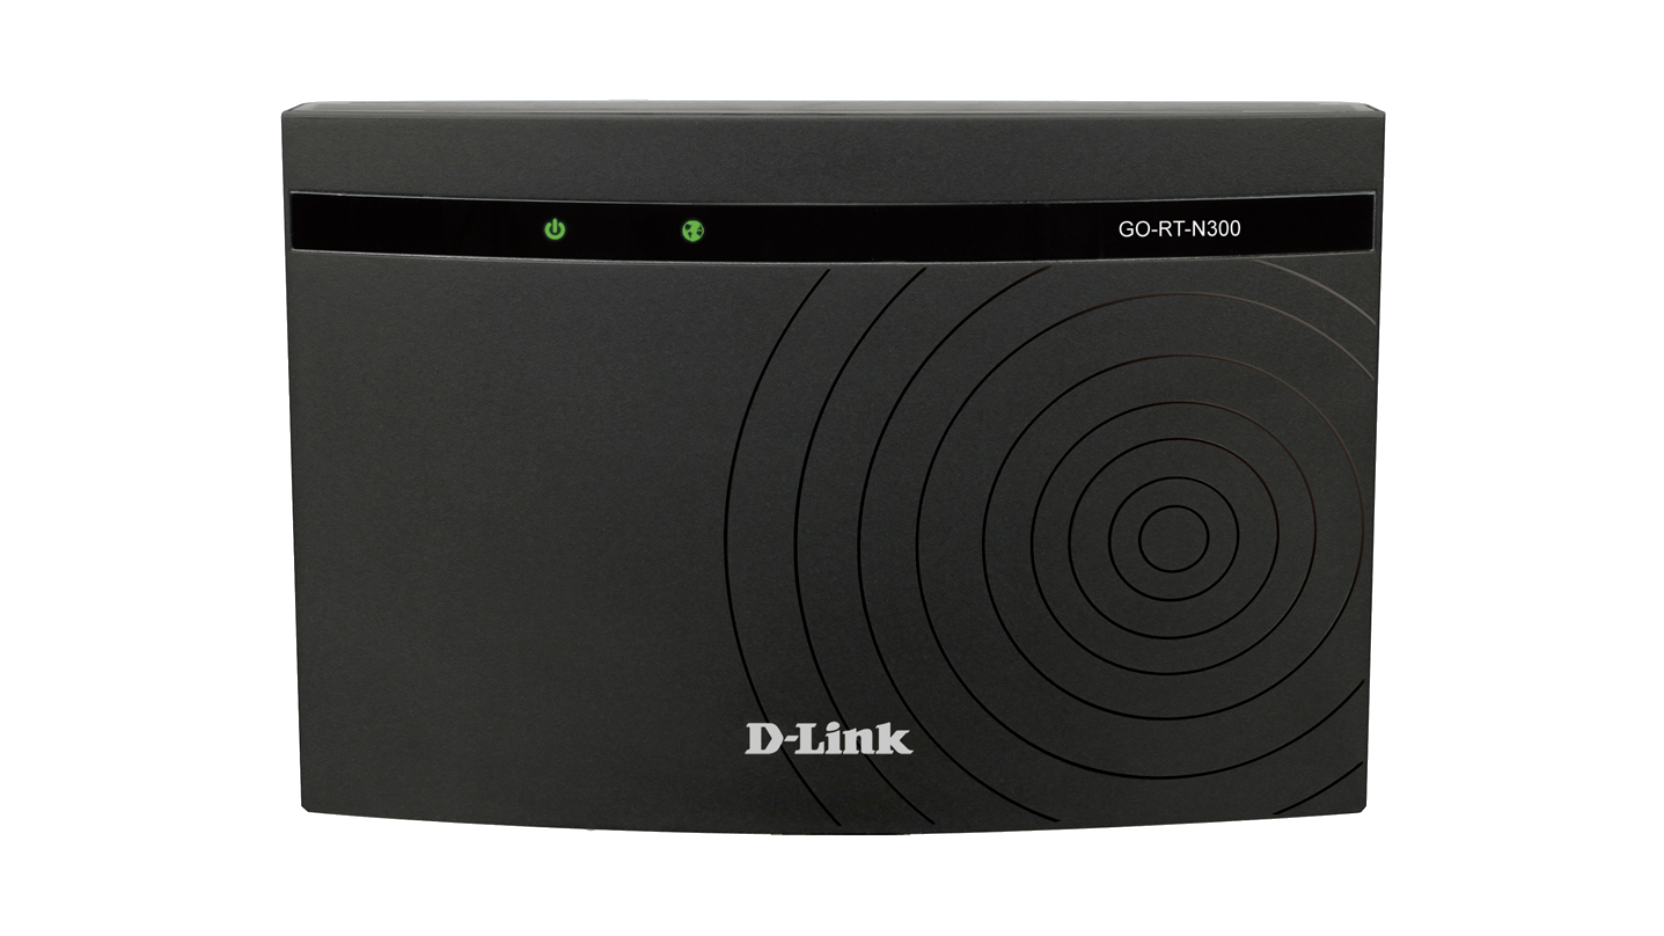 d link wireless n300 review